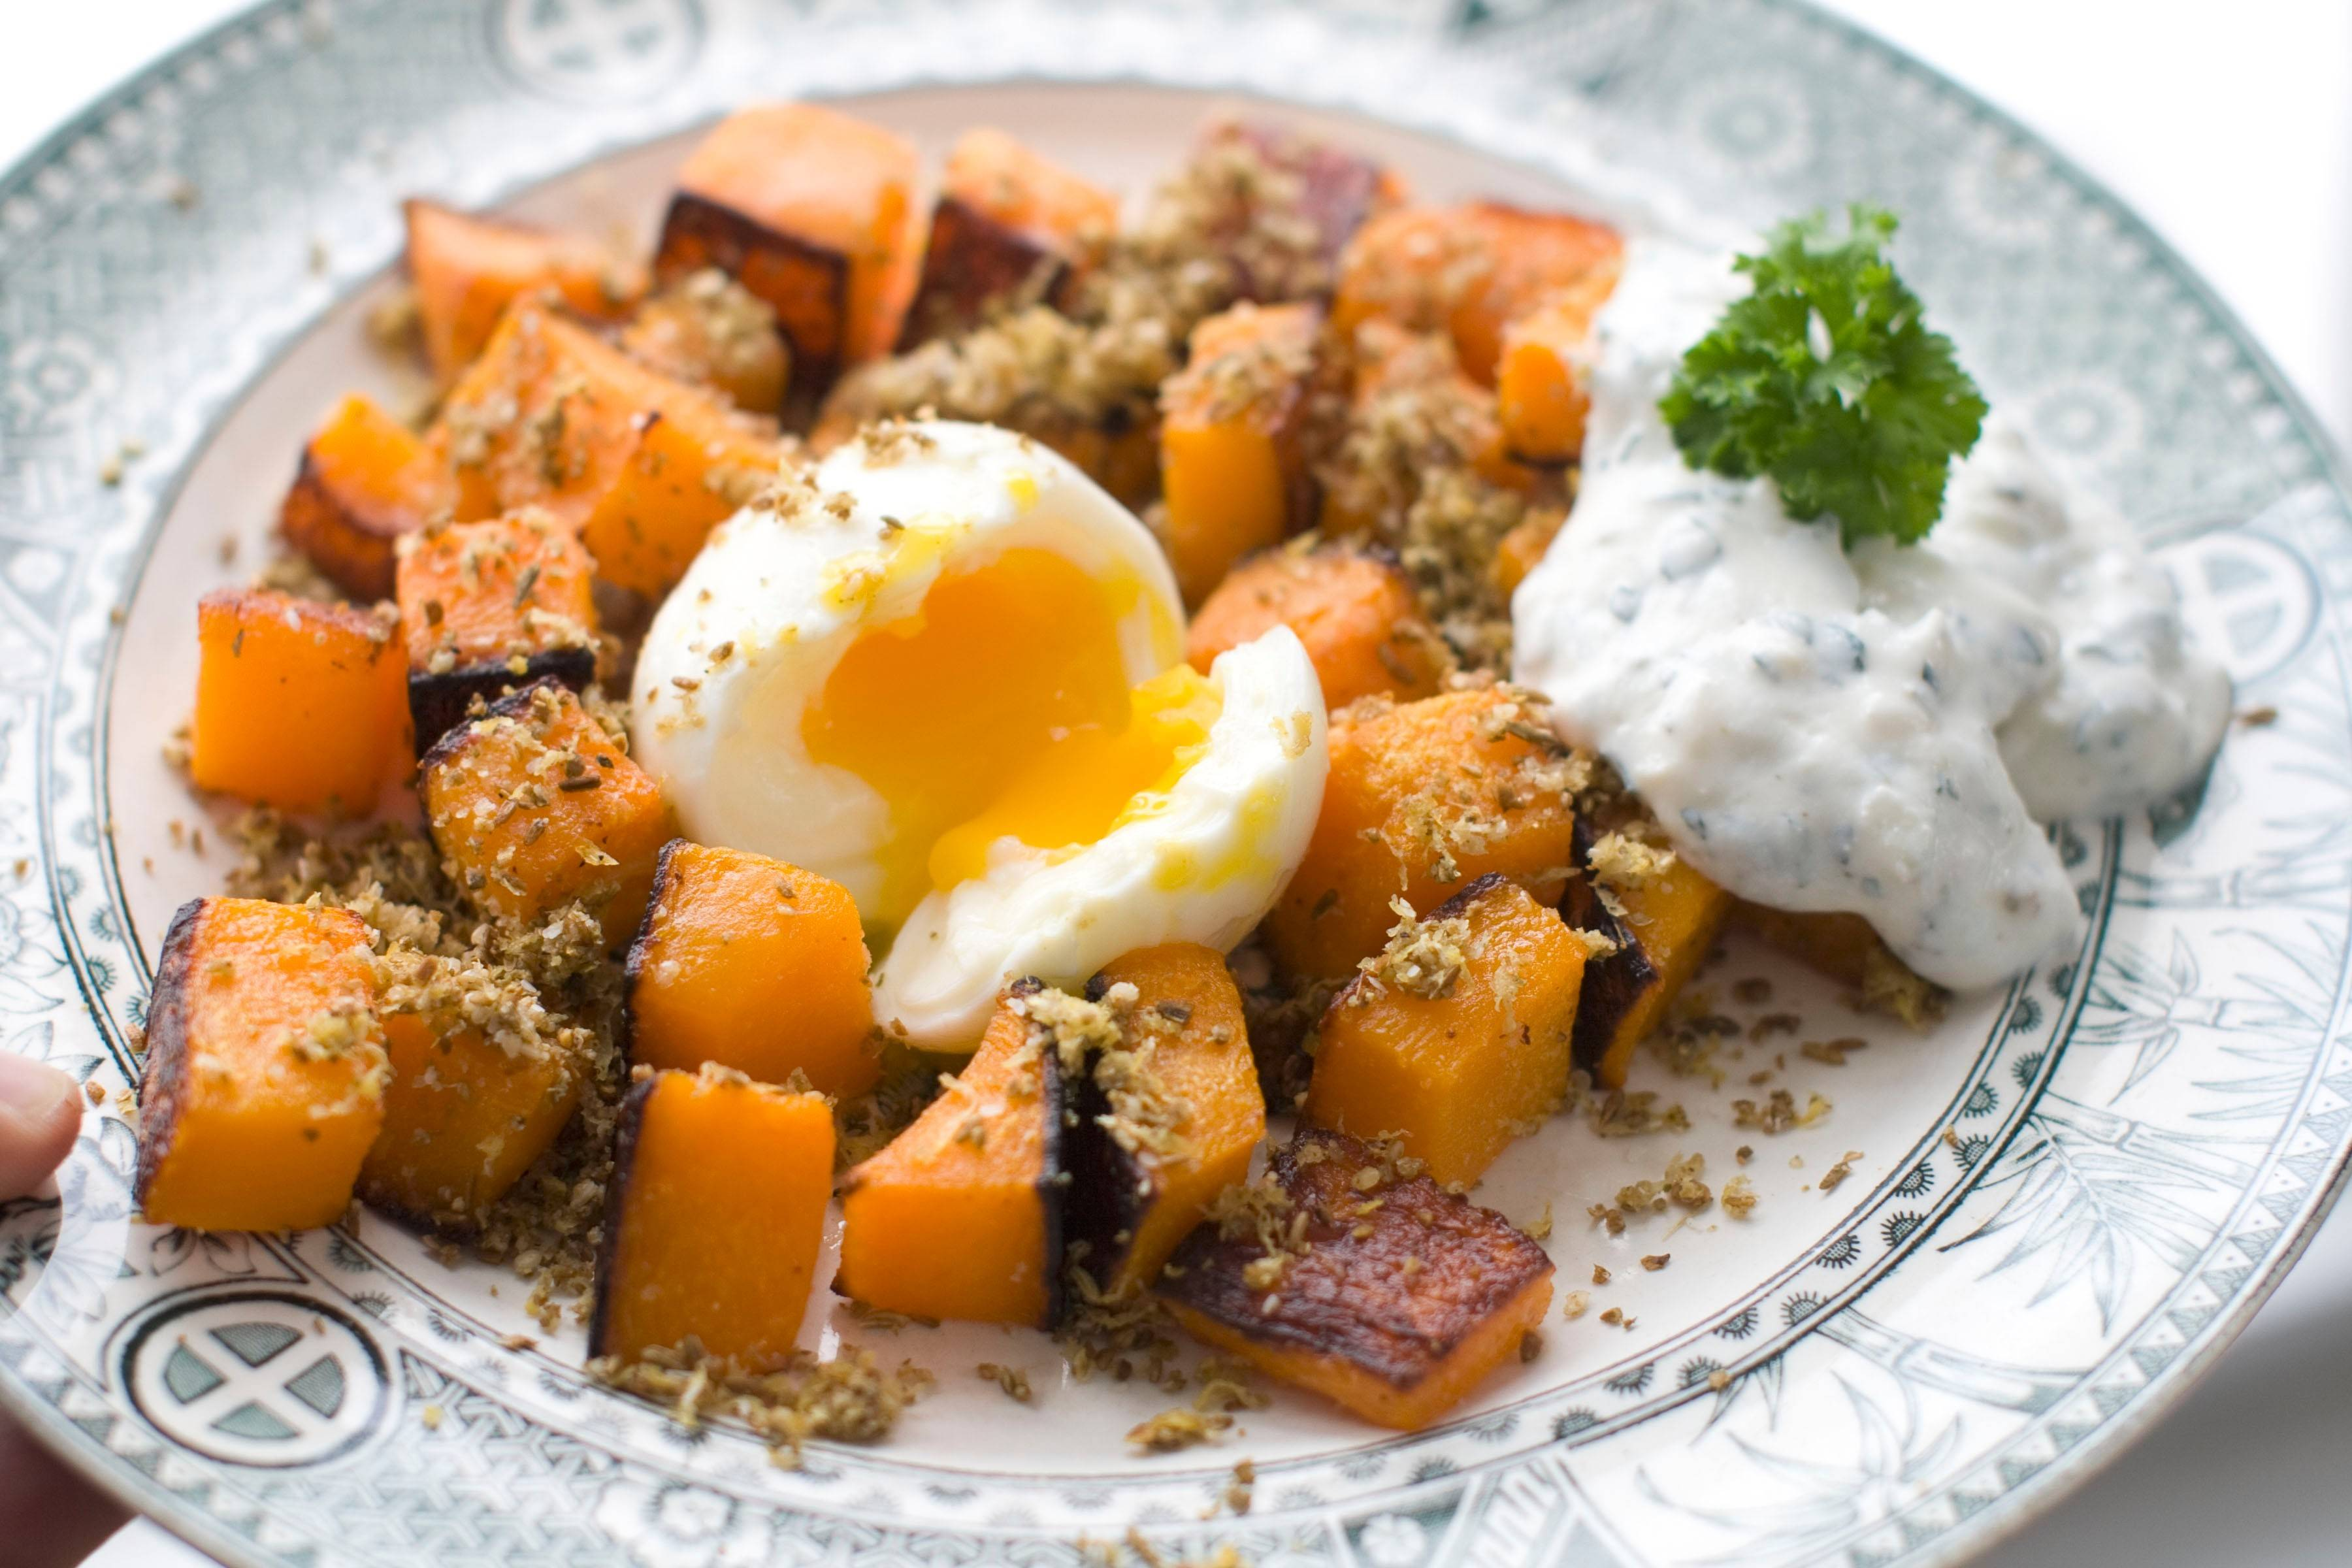 Middle Eastern Roasted Butternut Squash with Soft-Boiled Eggs